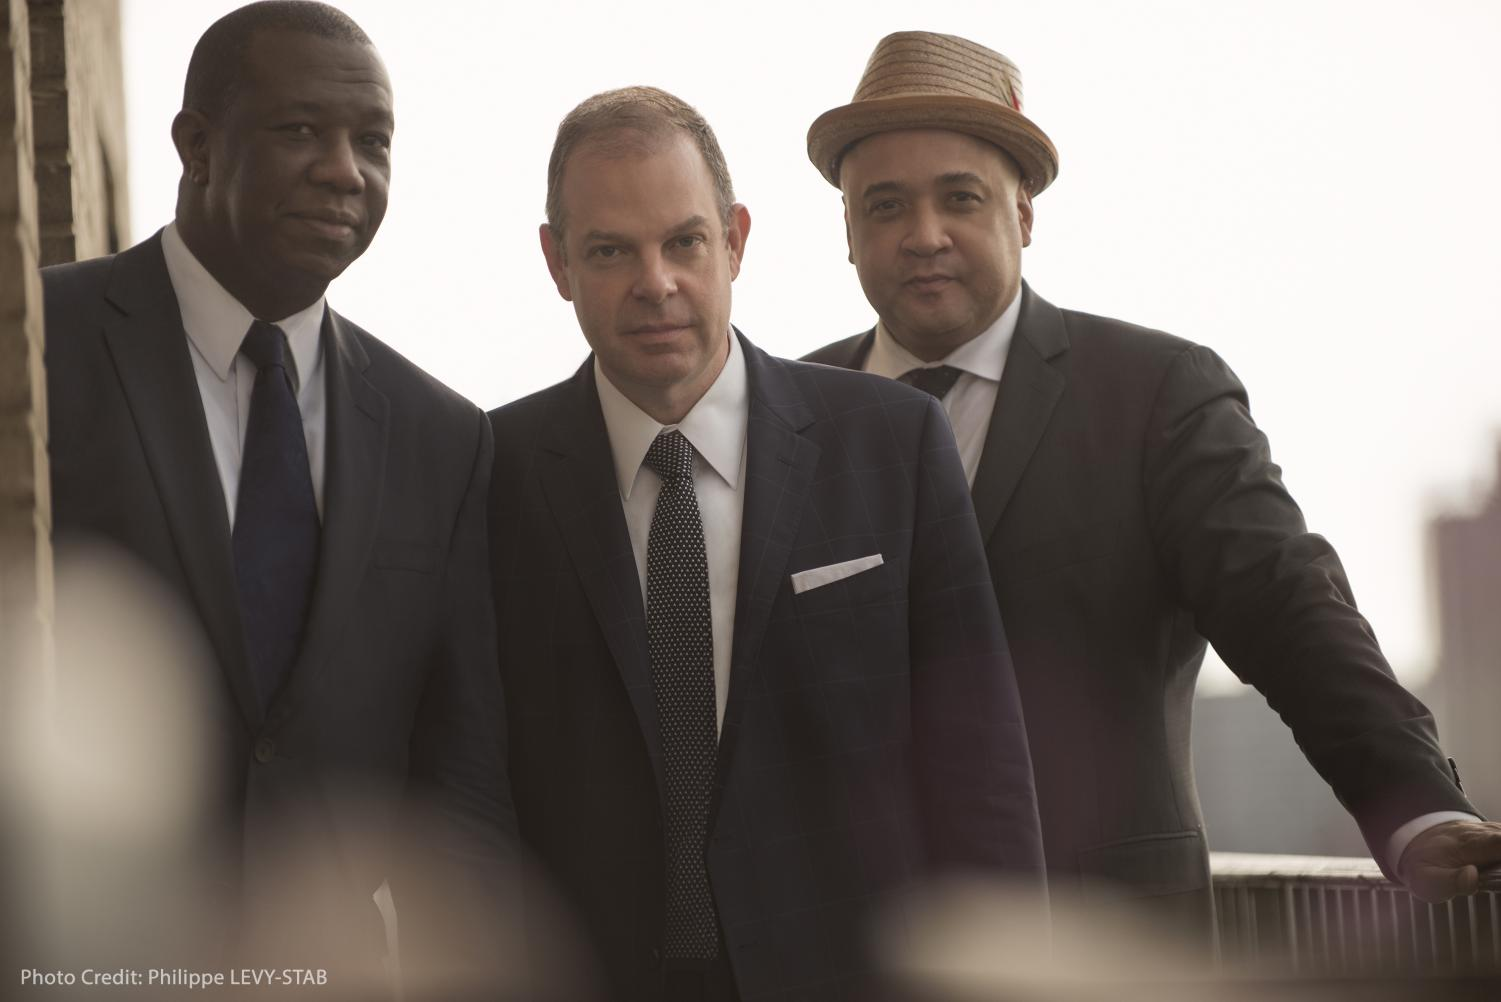 The Bill Charlap Trio: Kenny Washington (left) Bill Charlap (middle) and Peter Washington (right), thekurlandagency.com